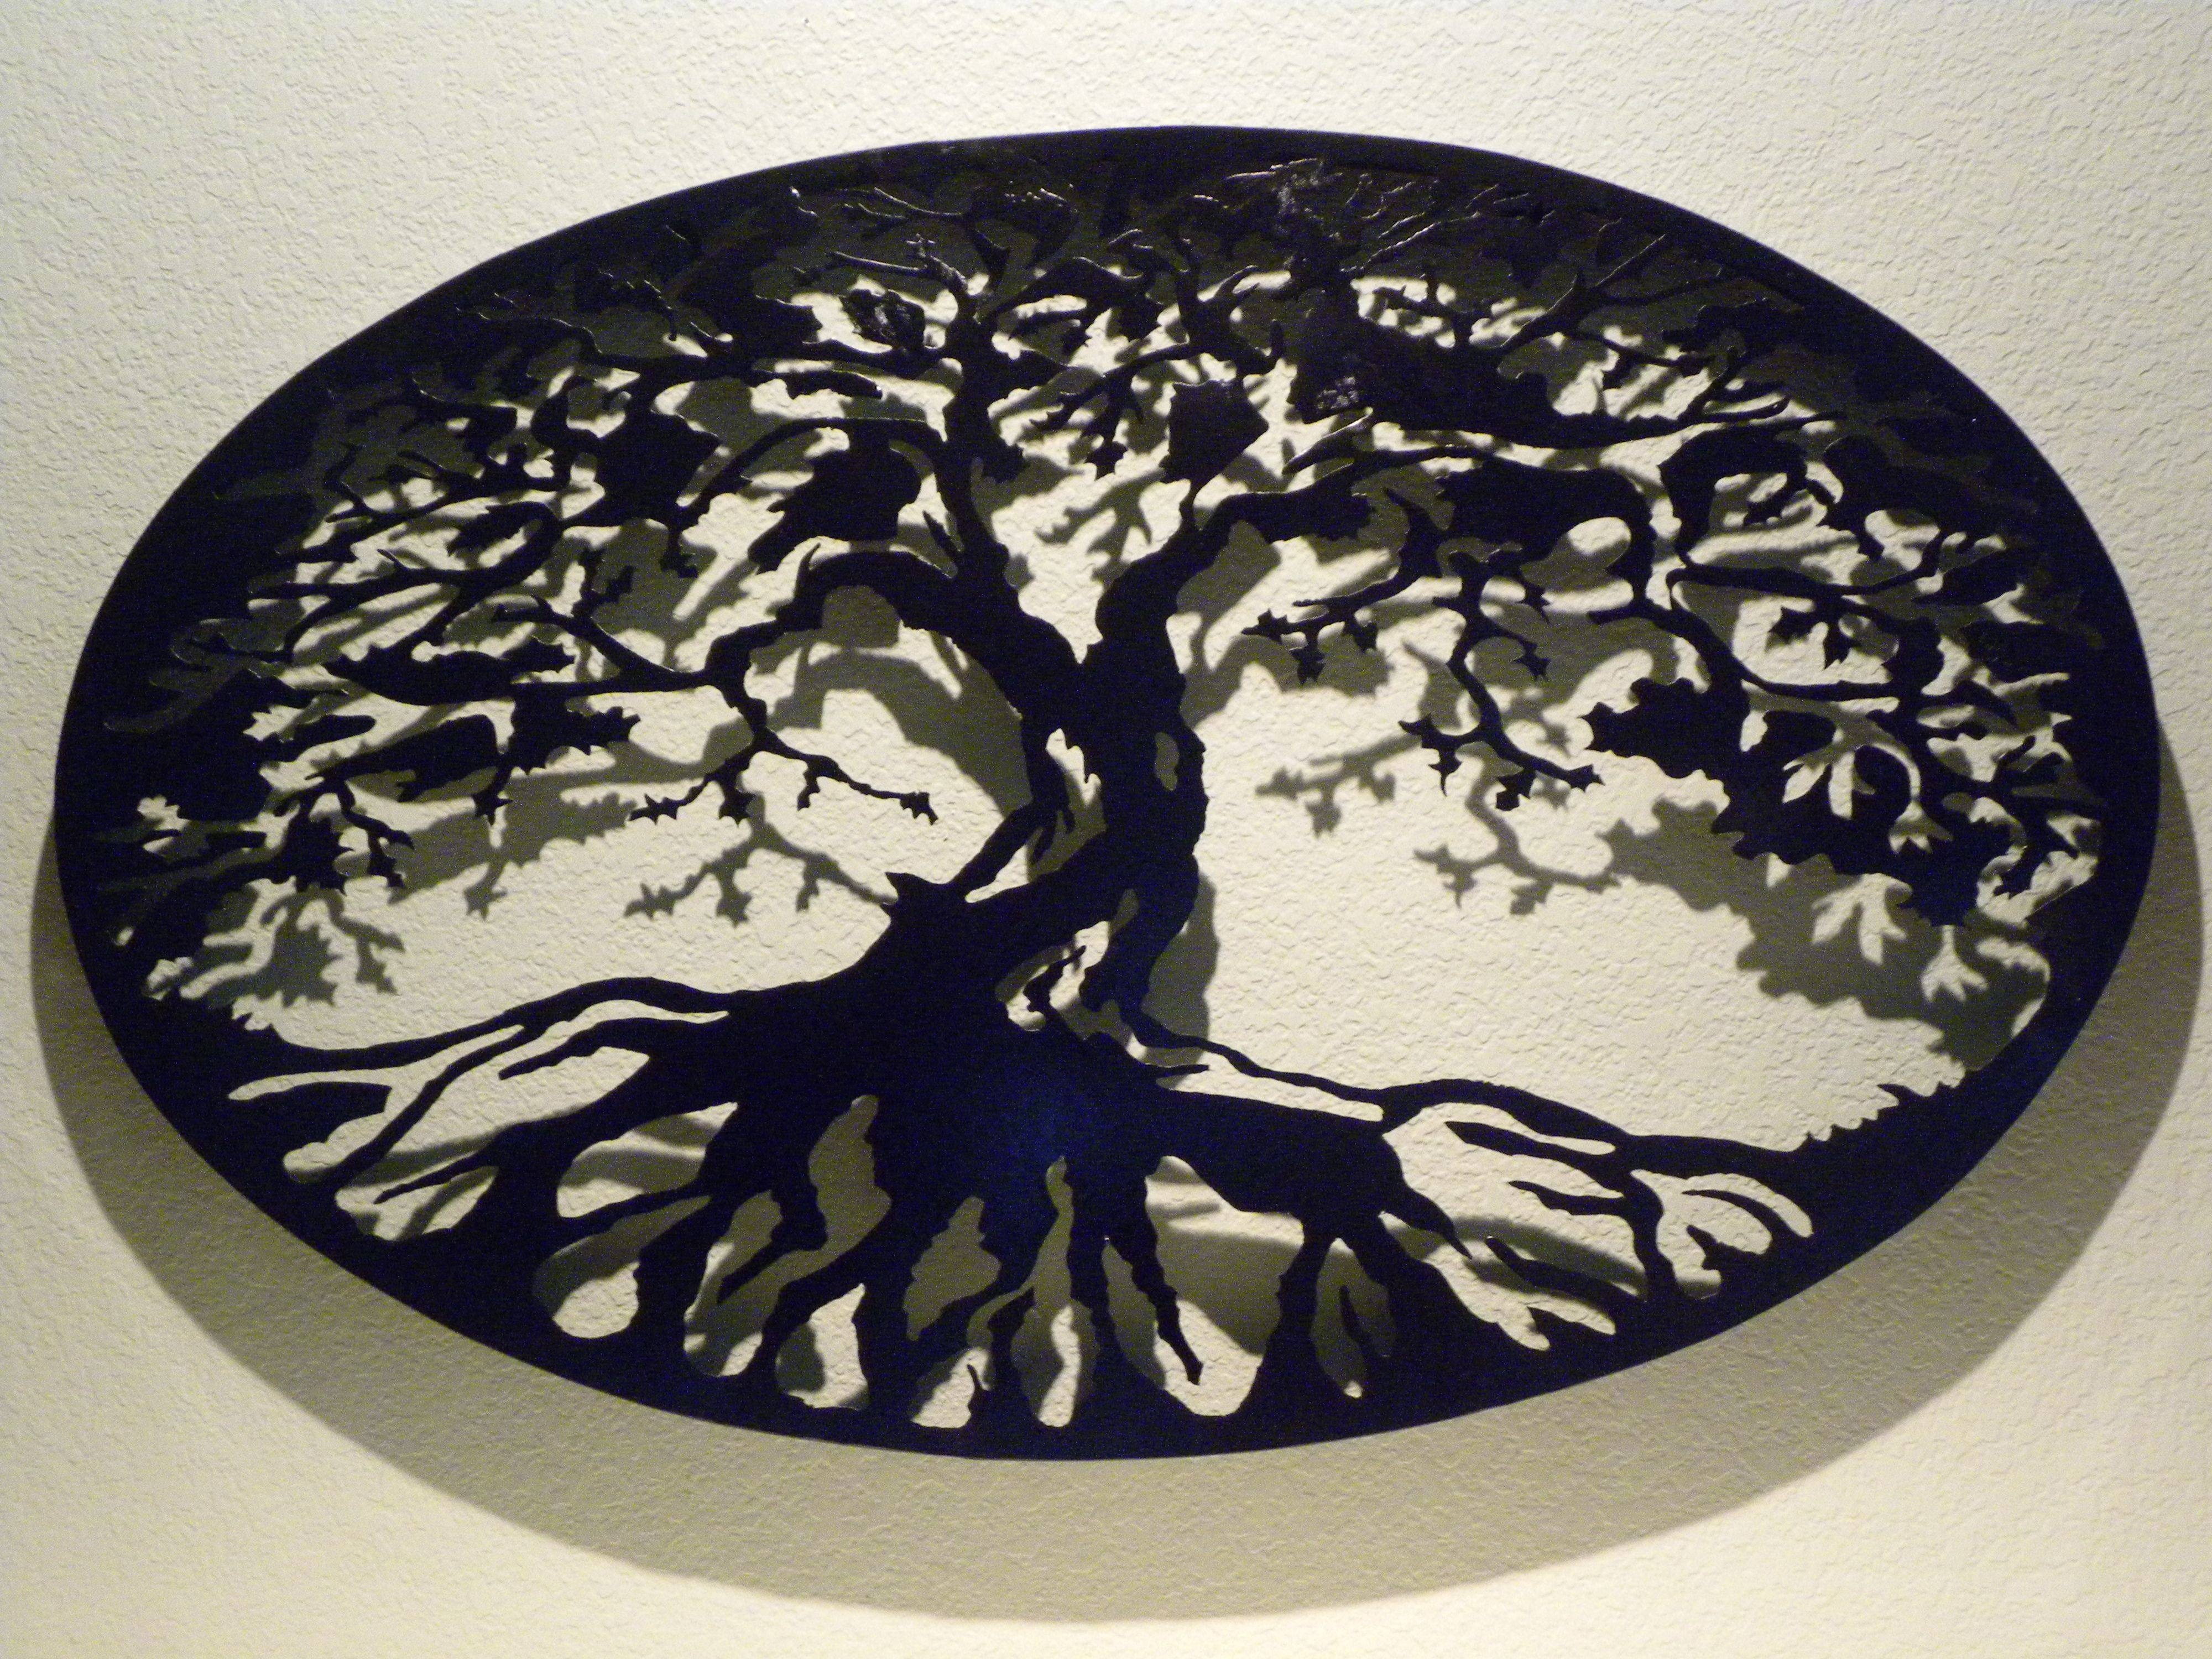 Buy A Custom Oval Tree Of Life Metal Wall Art, Made To Order From Intended For Newest Black And White Metal Wall Art (View 15 of 20)